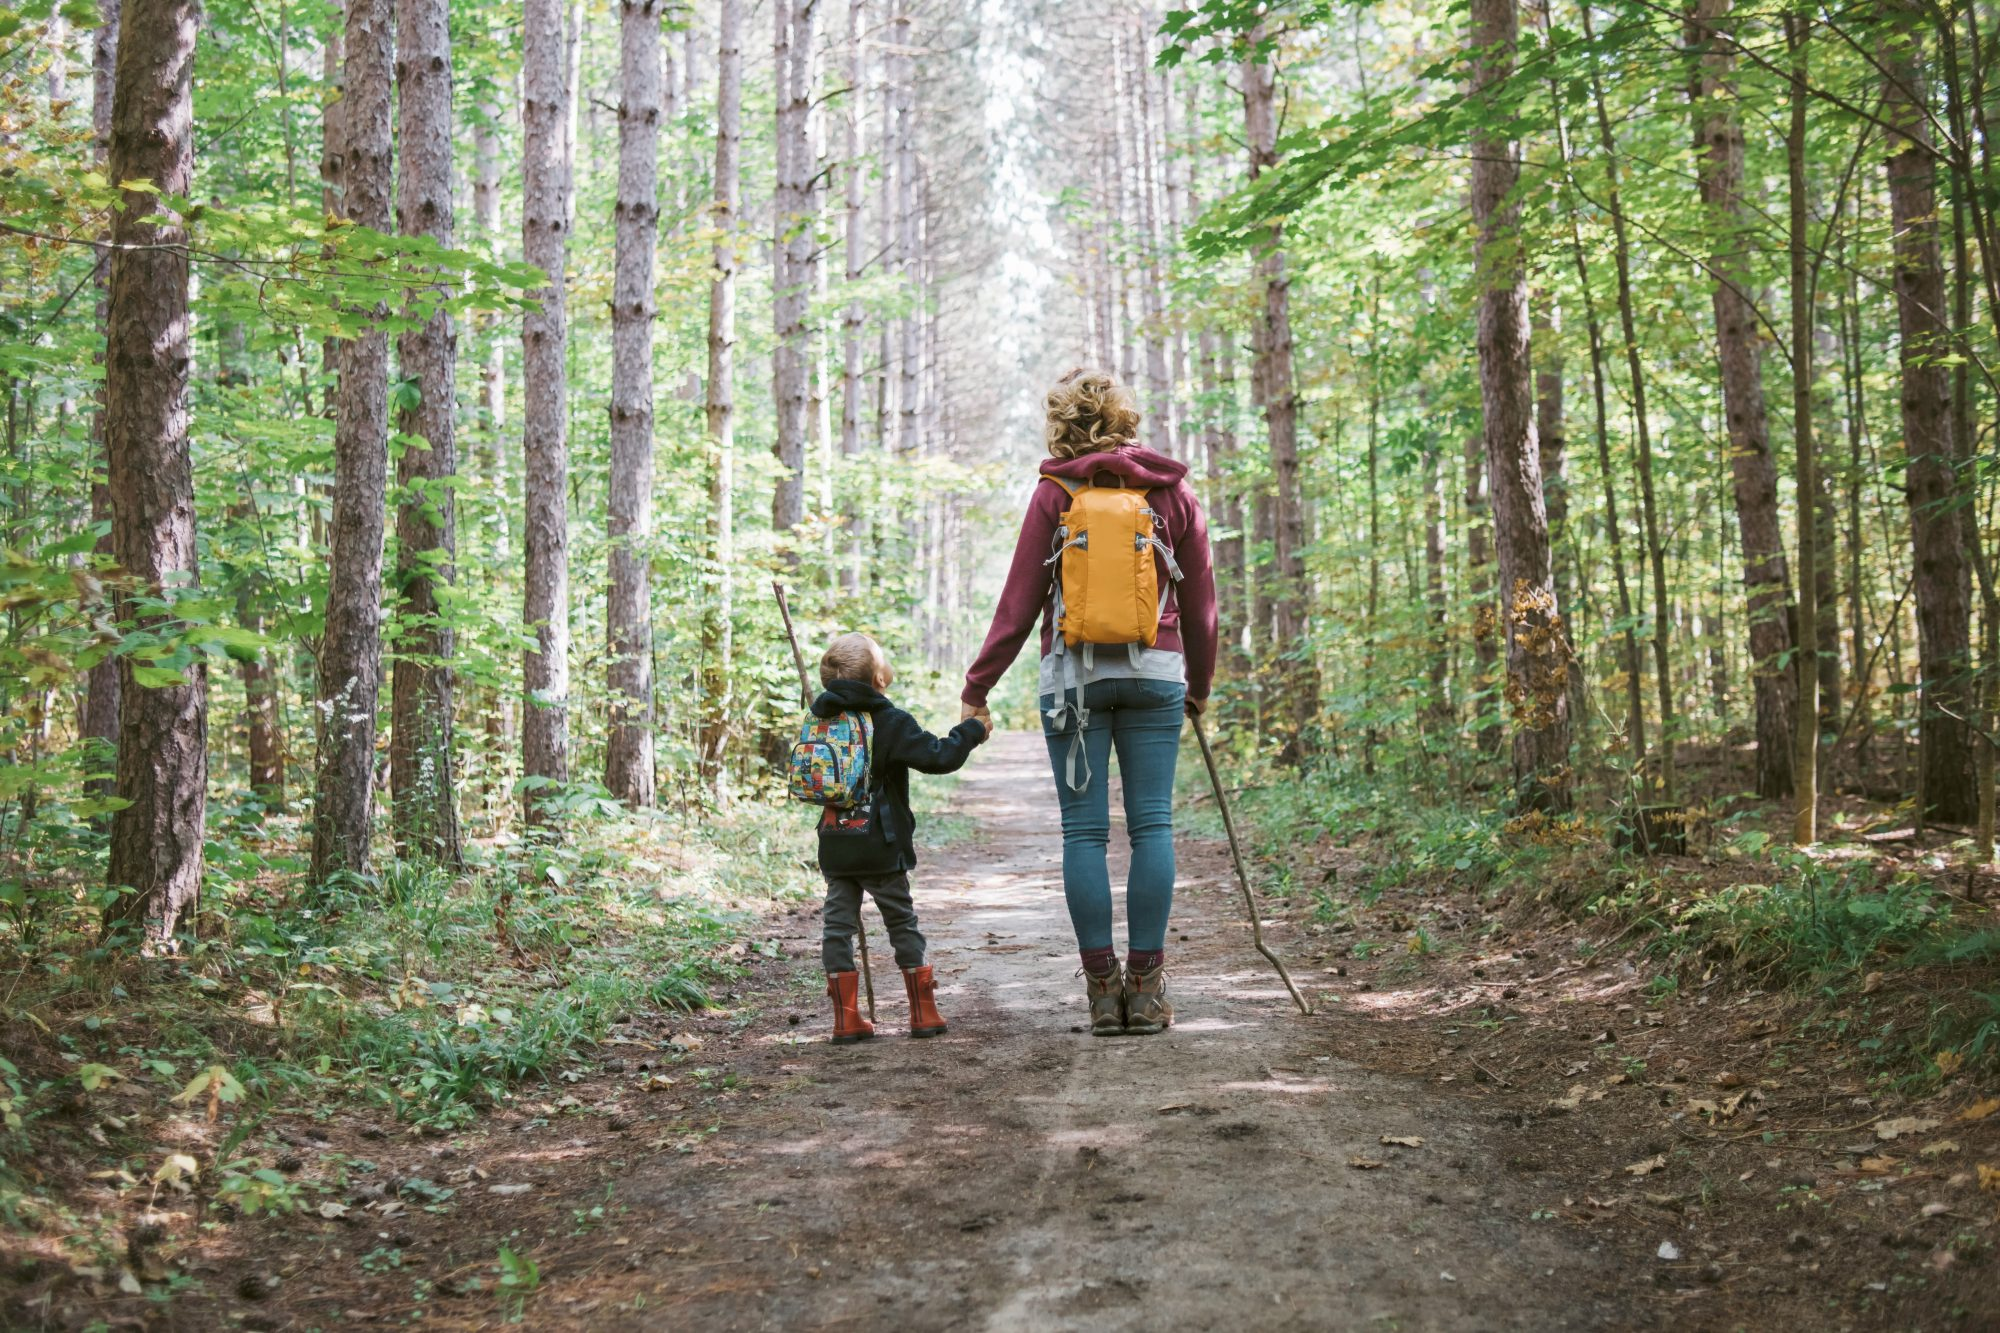 woman and child hiking in forest